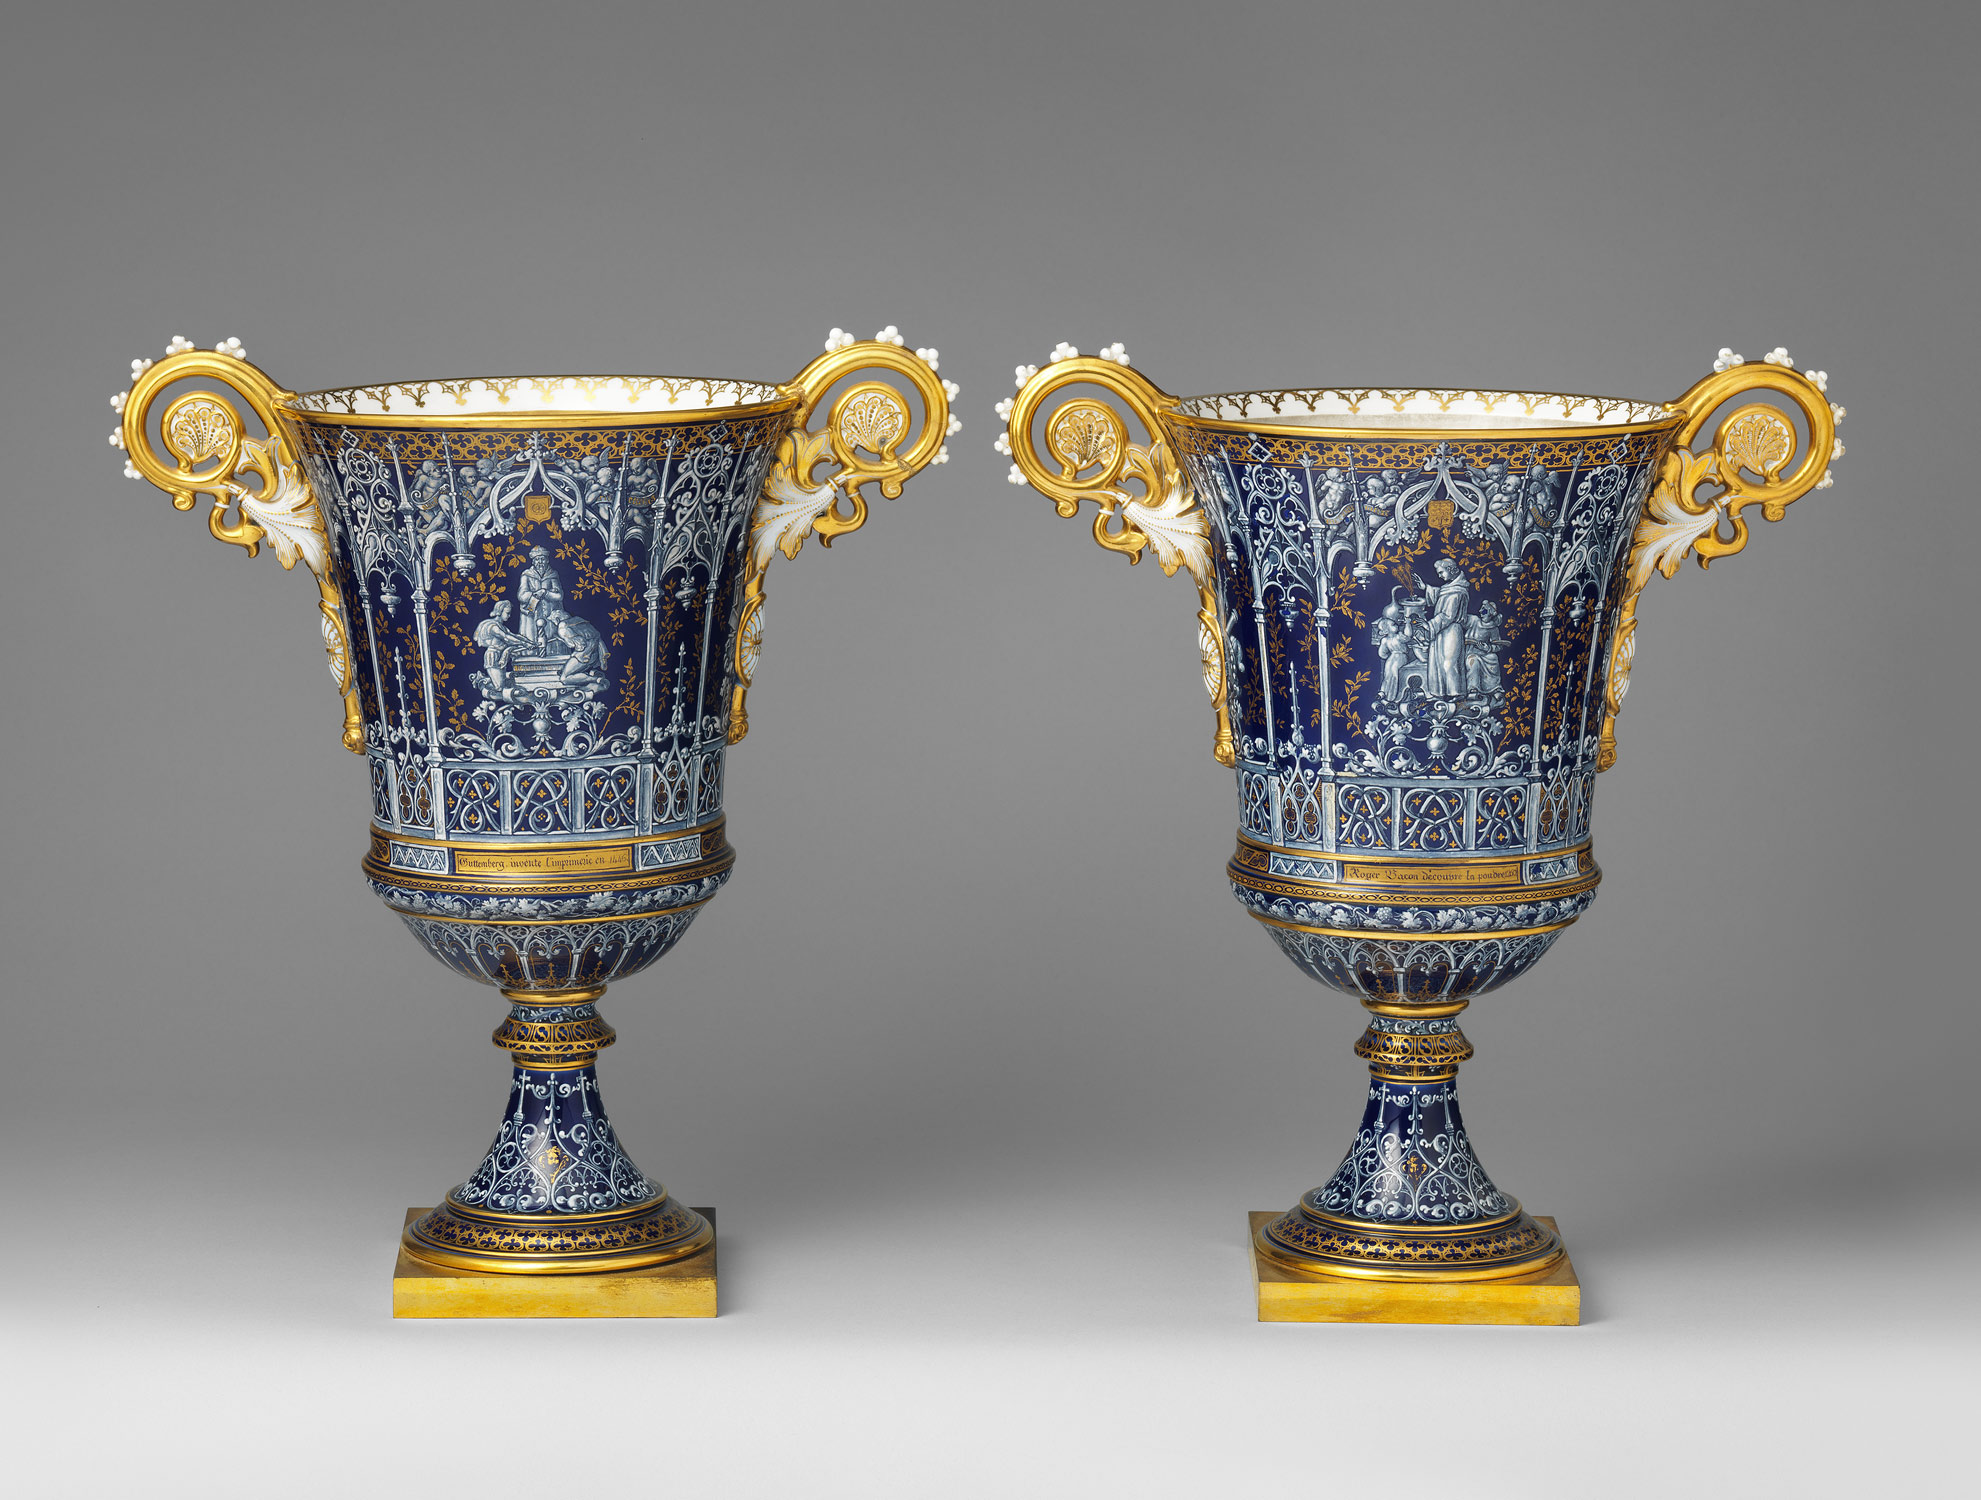 Vase (vase gothique Fragonard) (one of a pair)